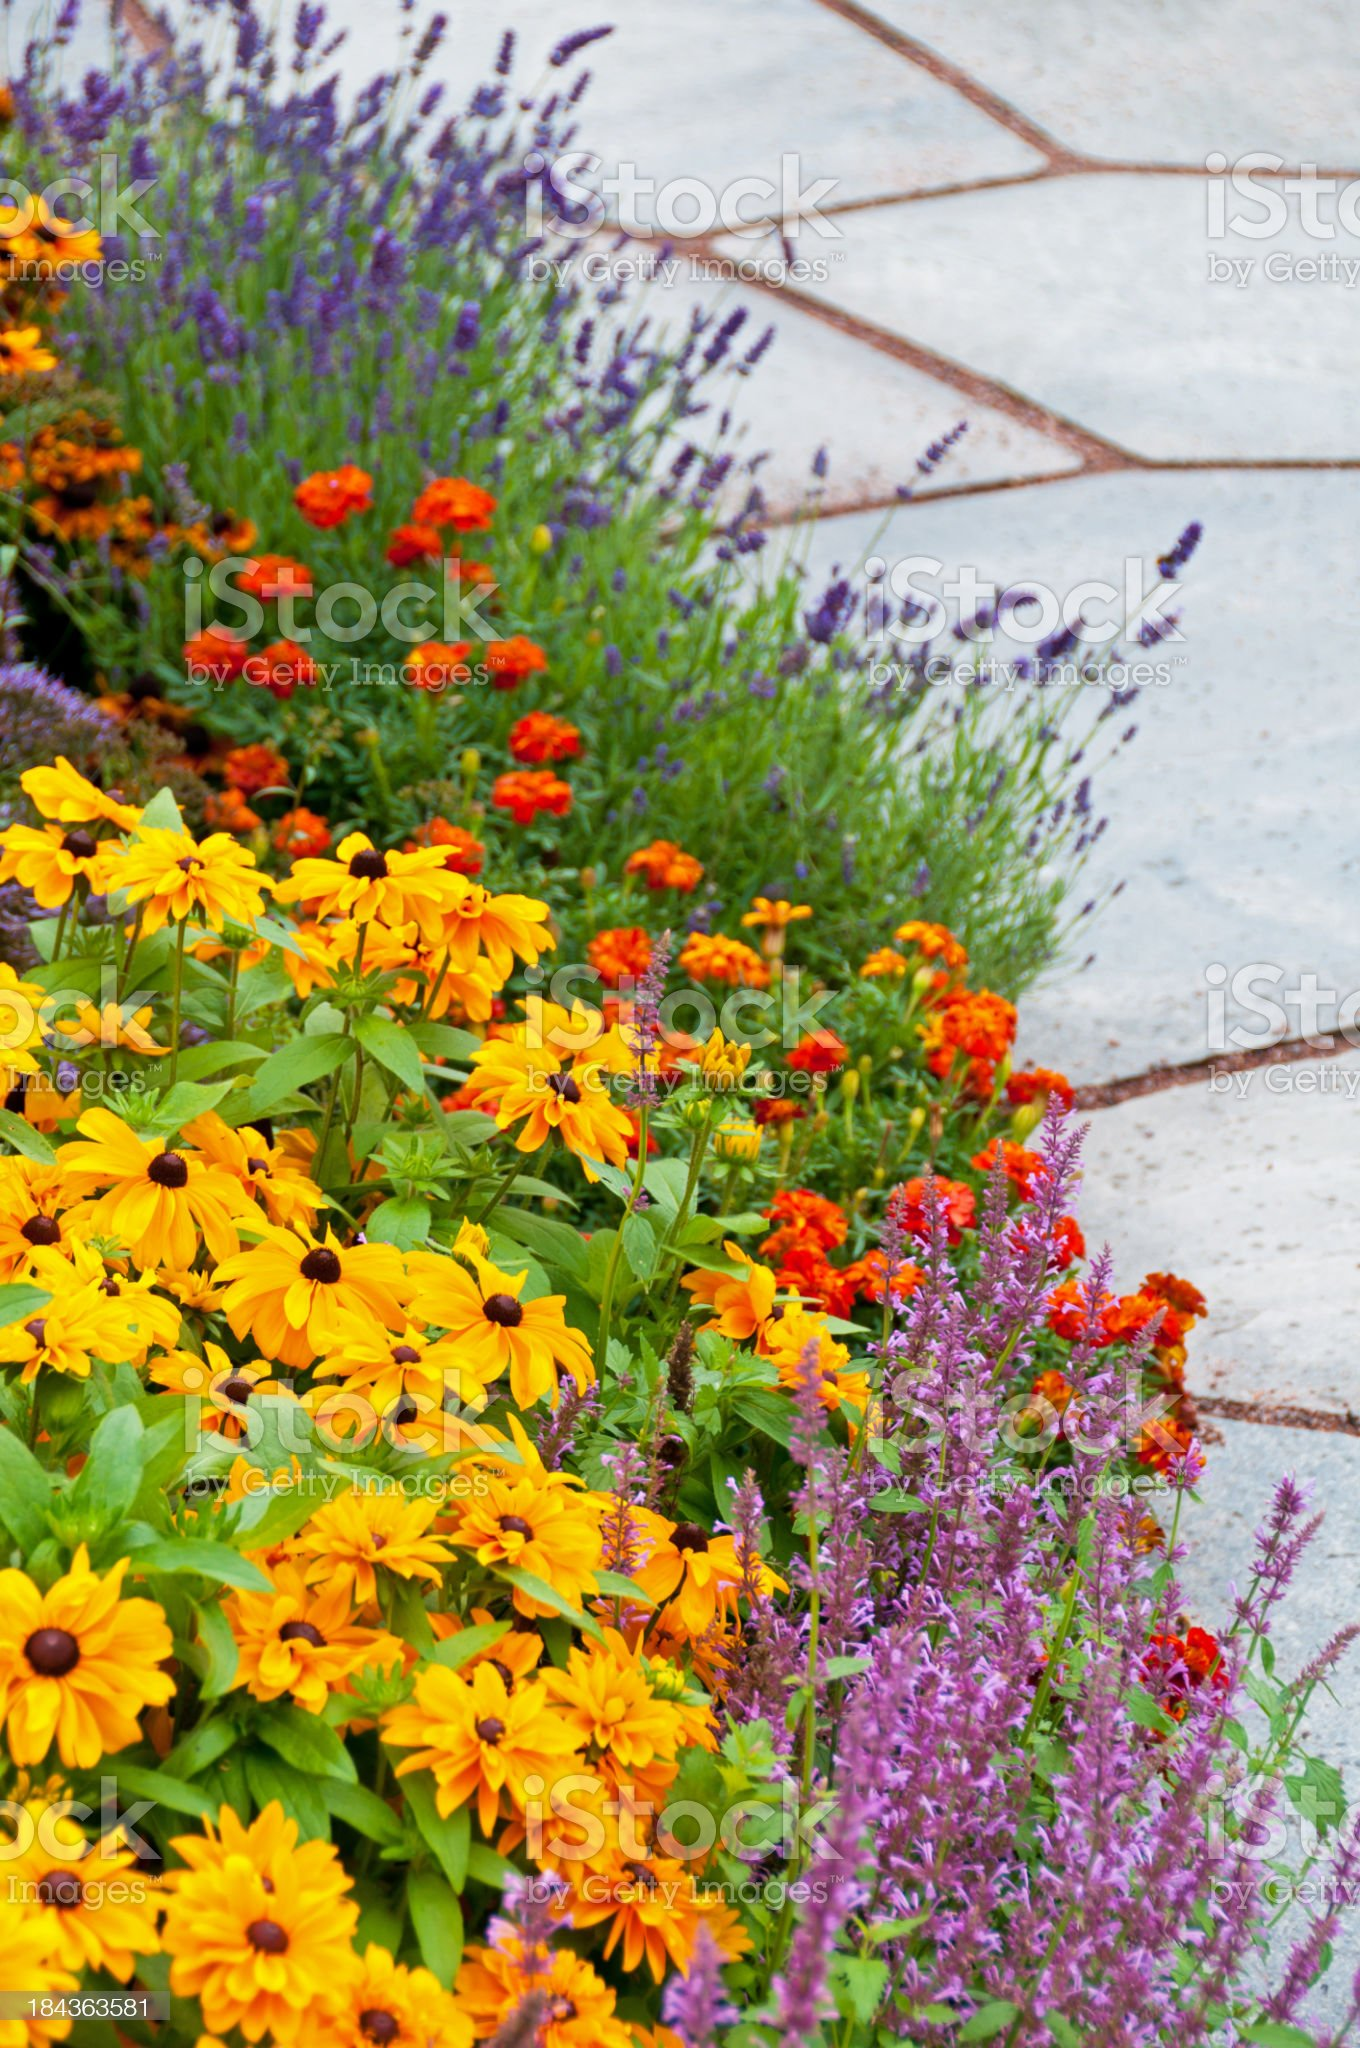 Colorful flower bed next to slate path royalty-free stock photo